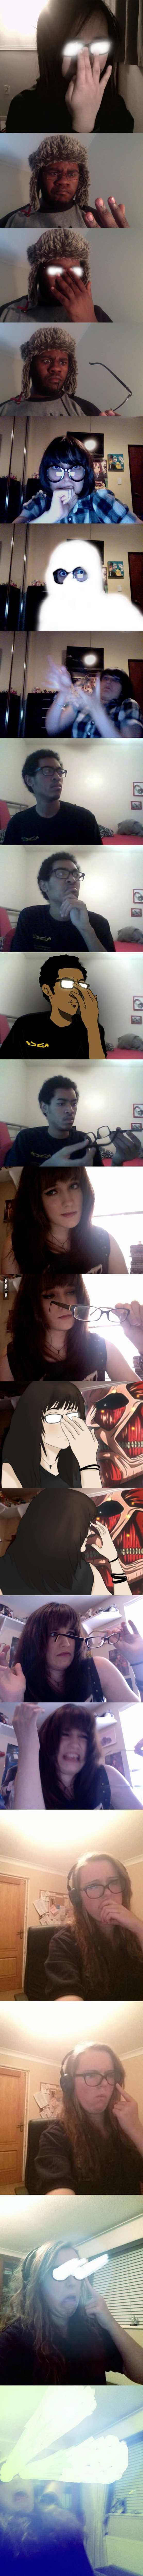 People Doing The Anime Glasses Thing. Omg, this made me laugh so hard!!